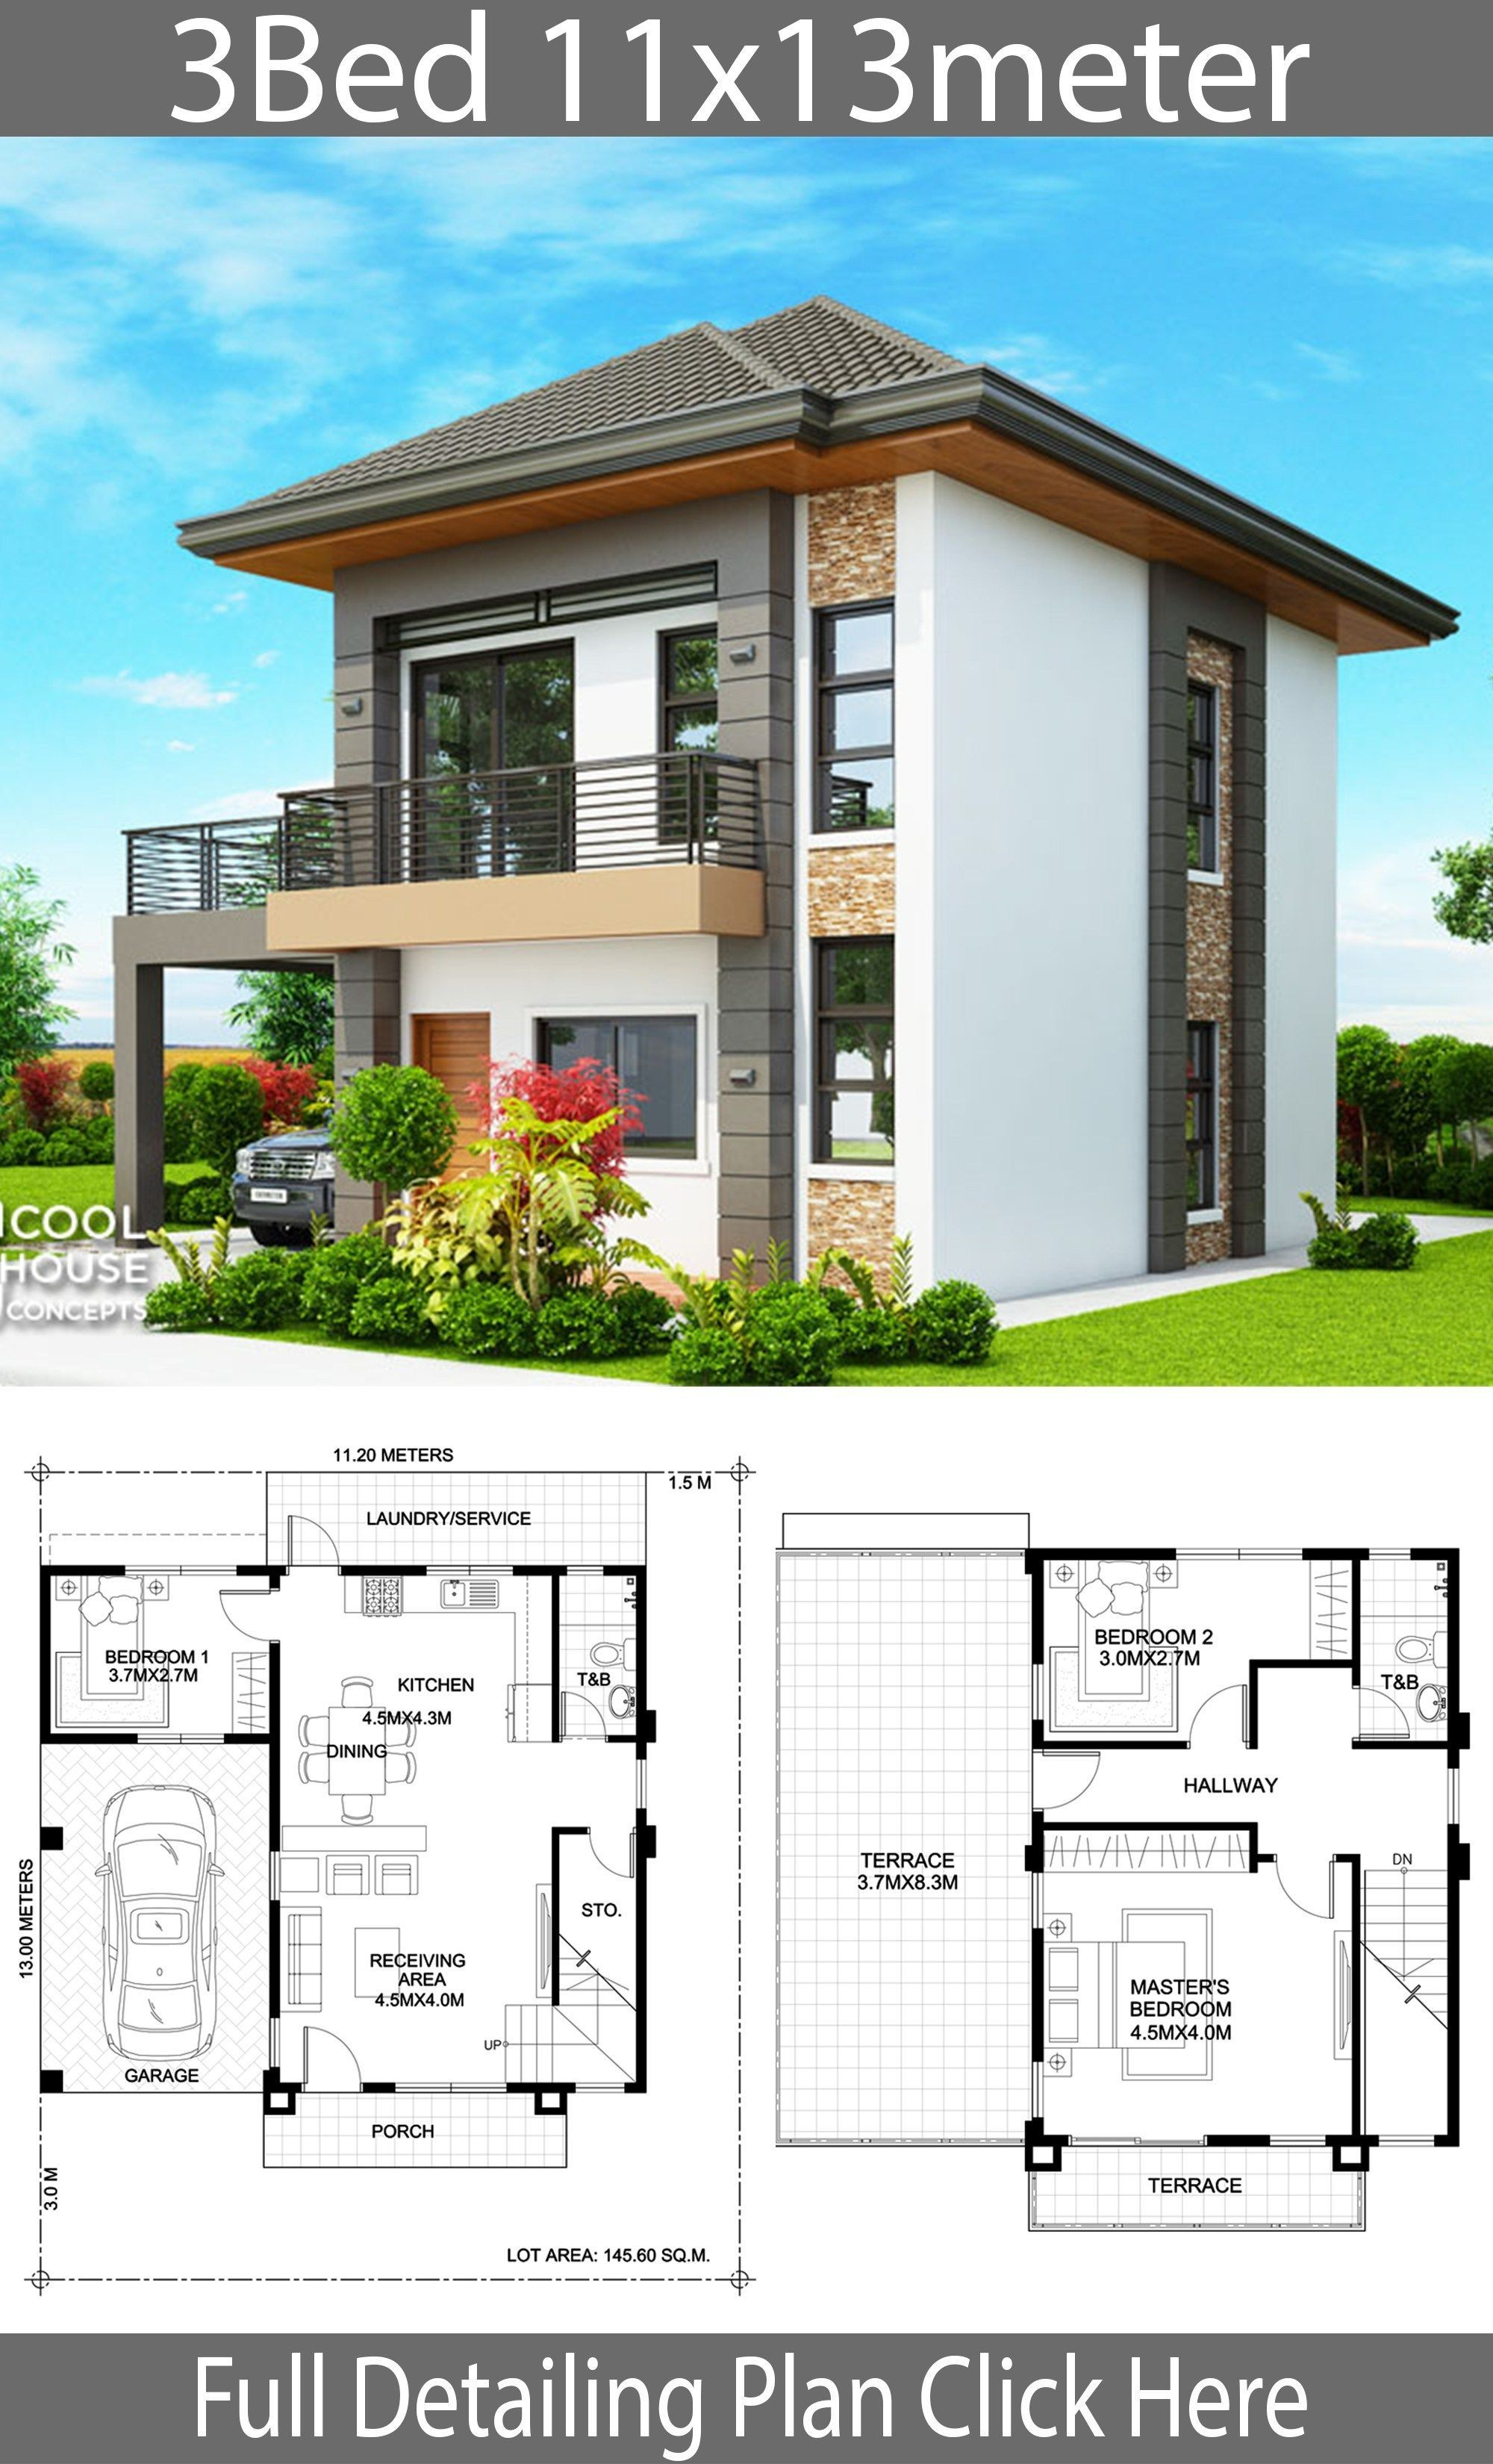 Home Design Plan 11x13m With 3 Bedrooms Philippines House Design House Construction Plan Two Story House Design